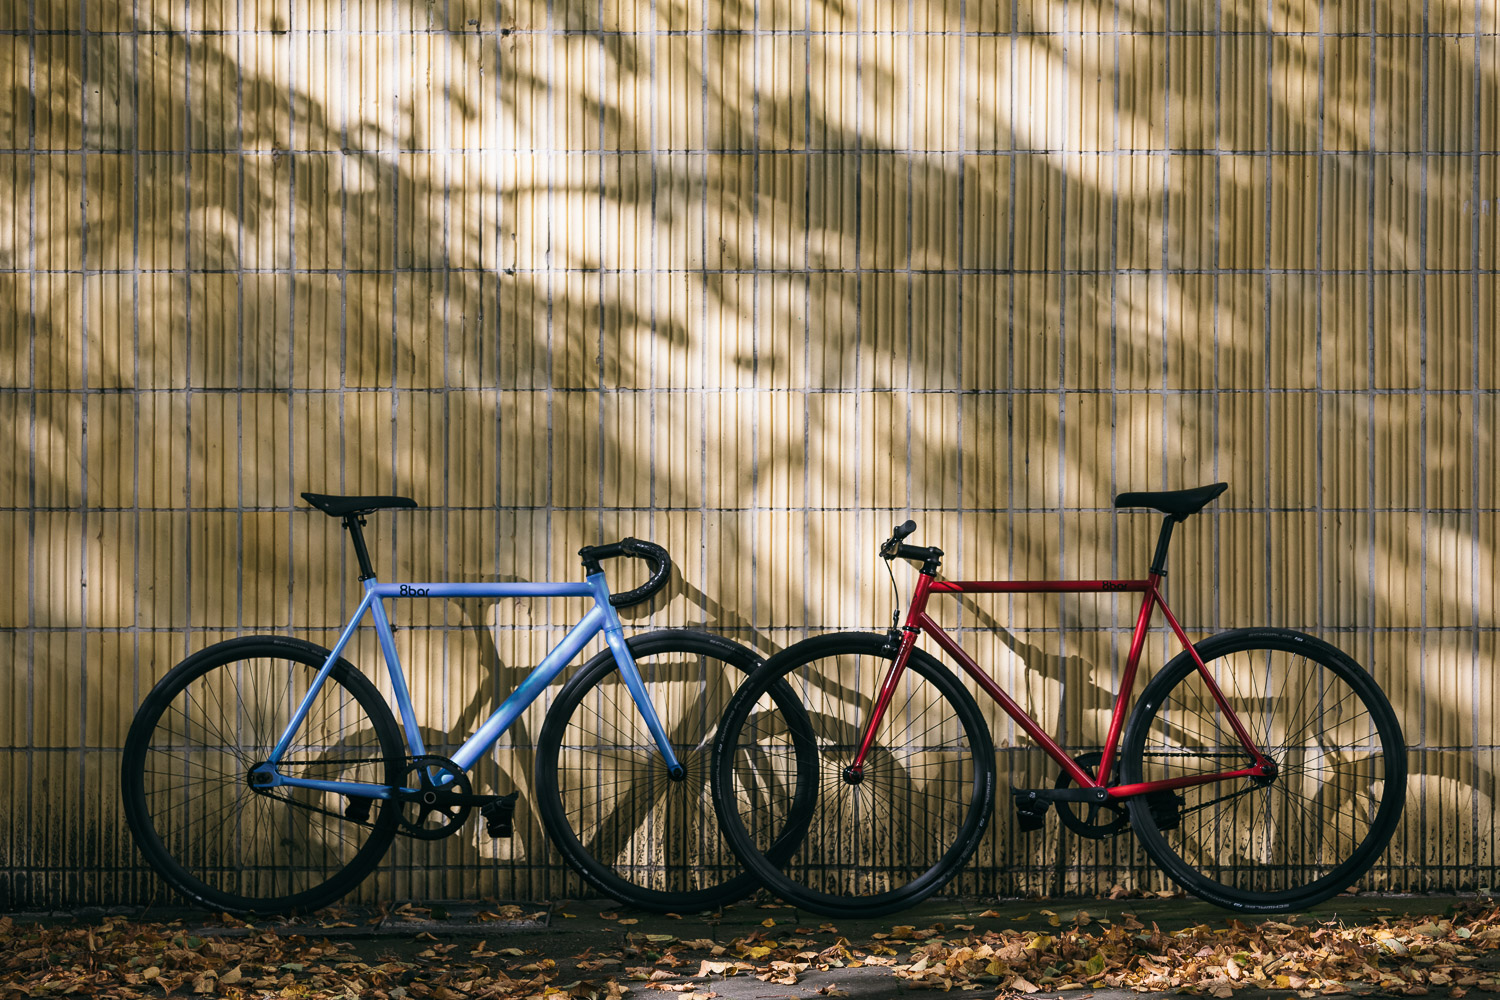 8bar-fhain-blue-red-fixie-fixed-gear-lr-19